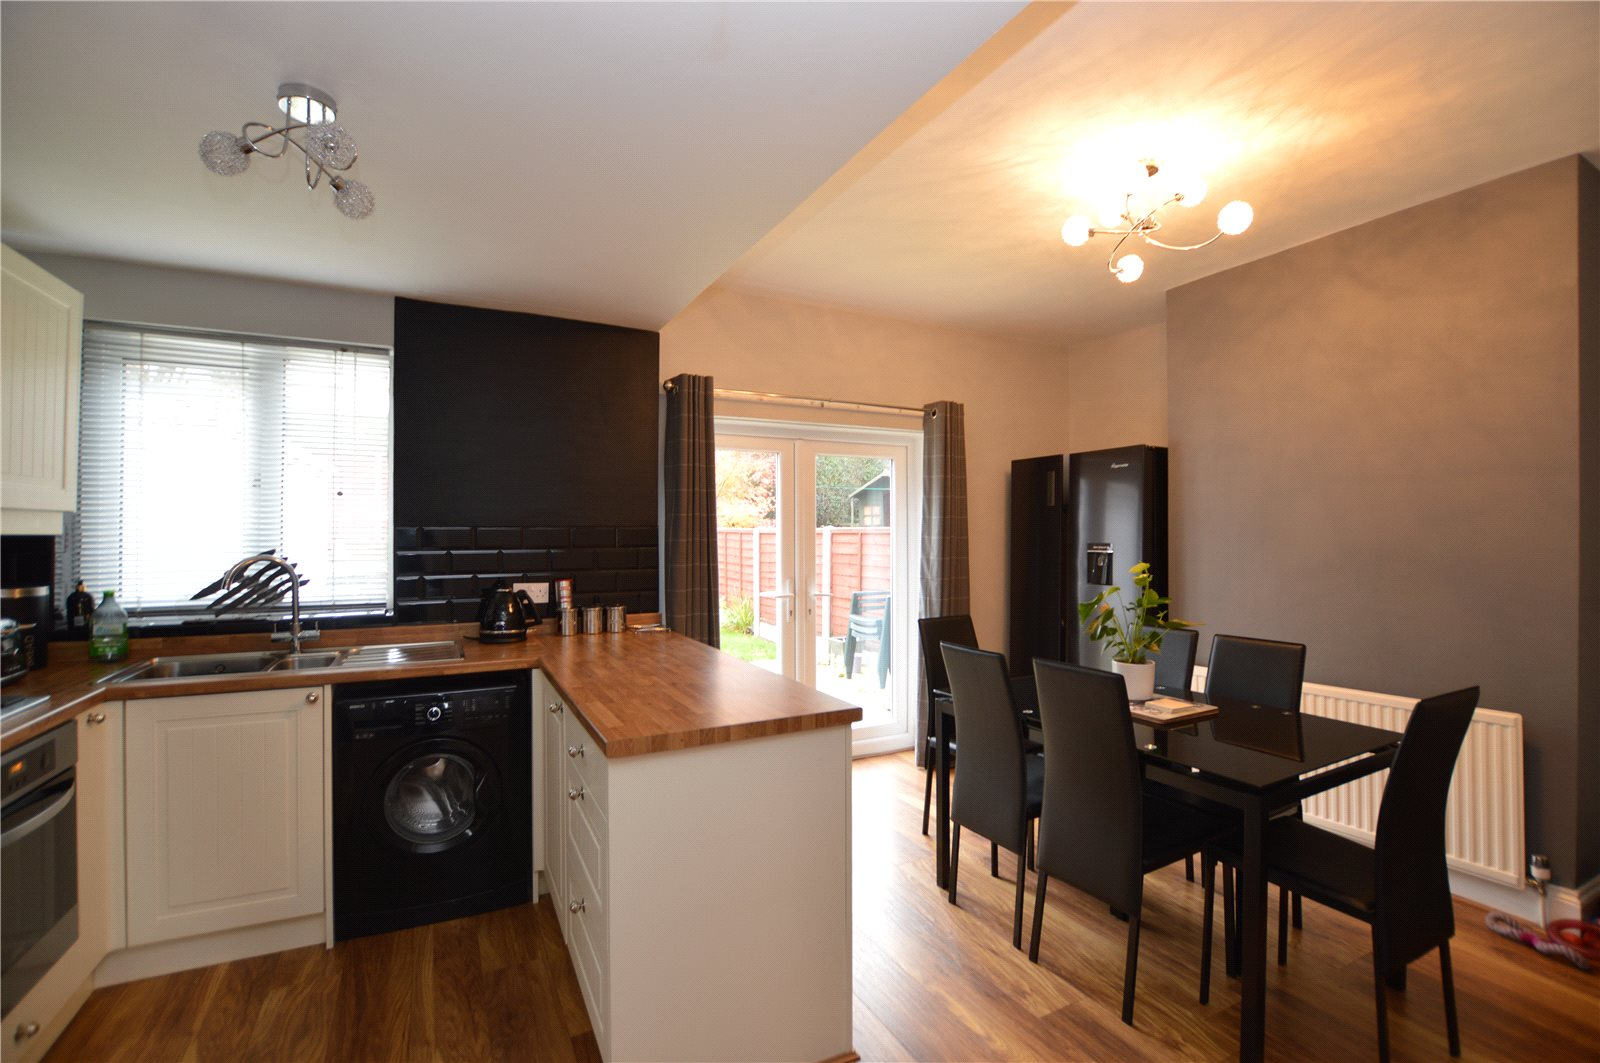 Property for sale in Morley, interior kitchen open plan dining